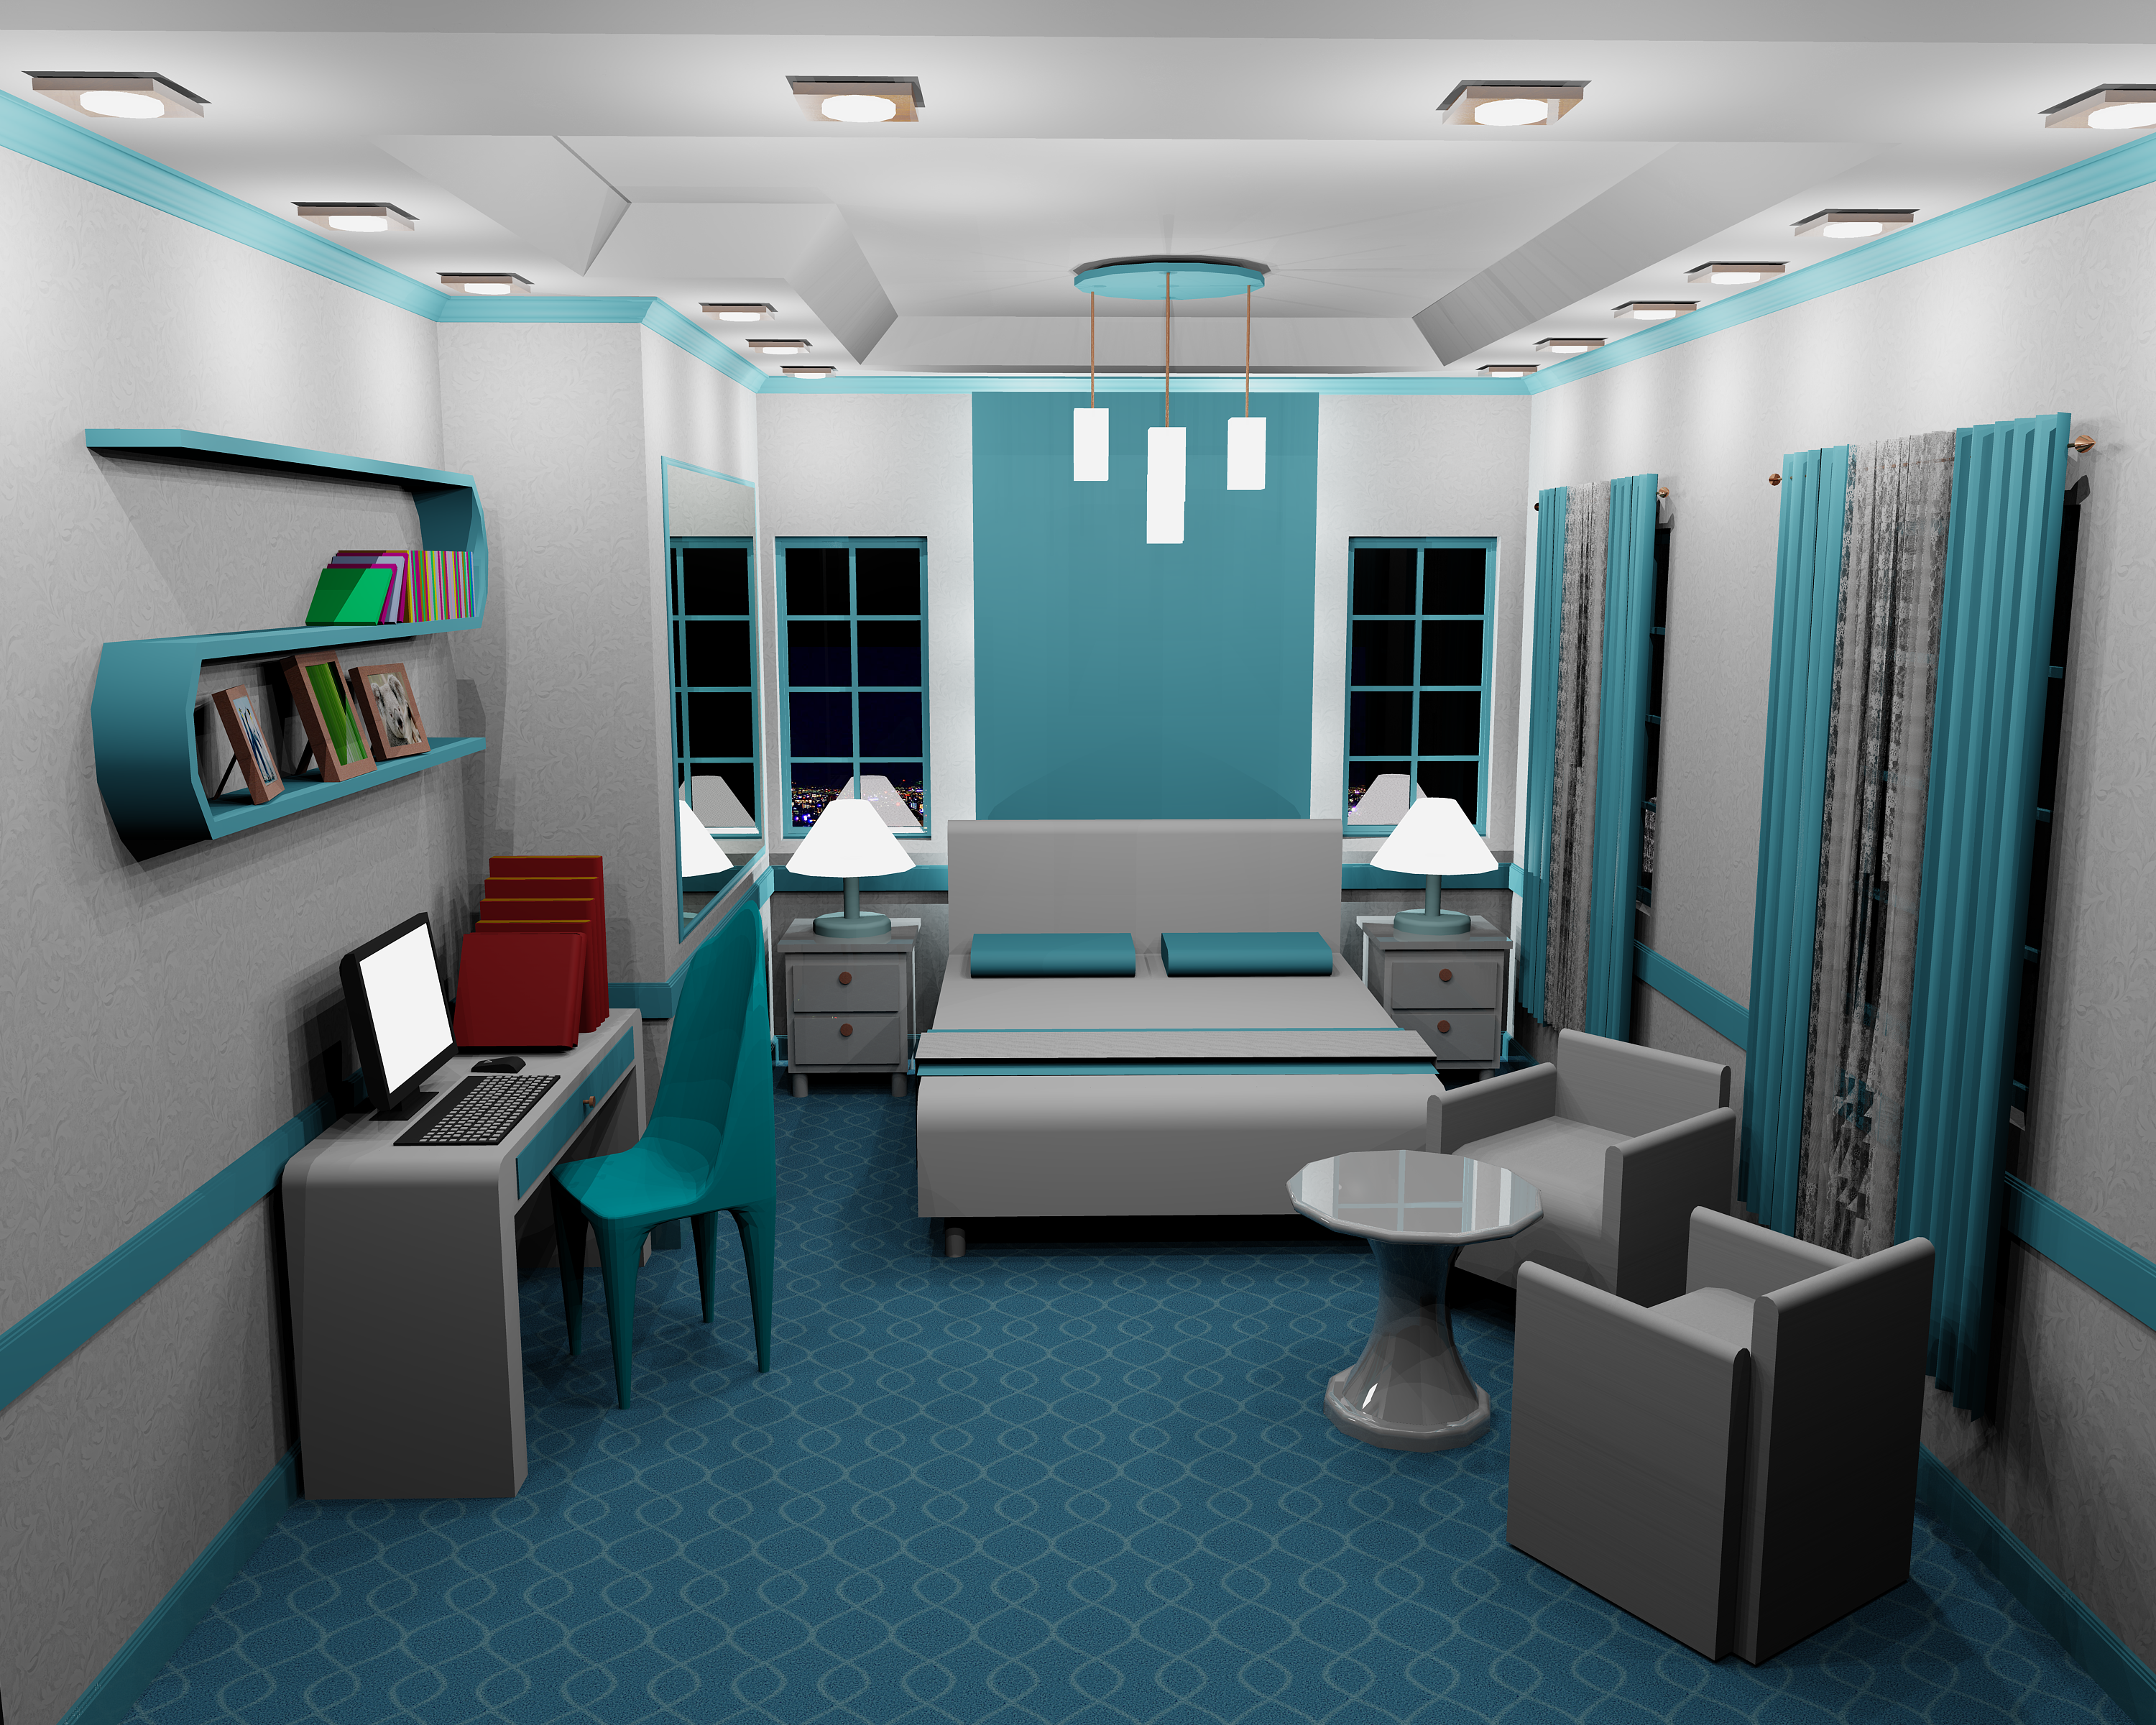 ... 3D Interior design using AutoCAD by IamHulyeta